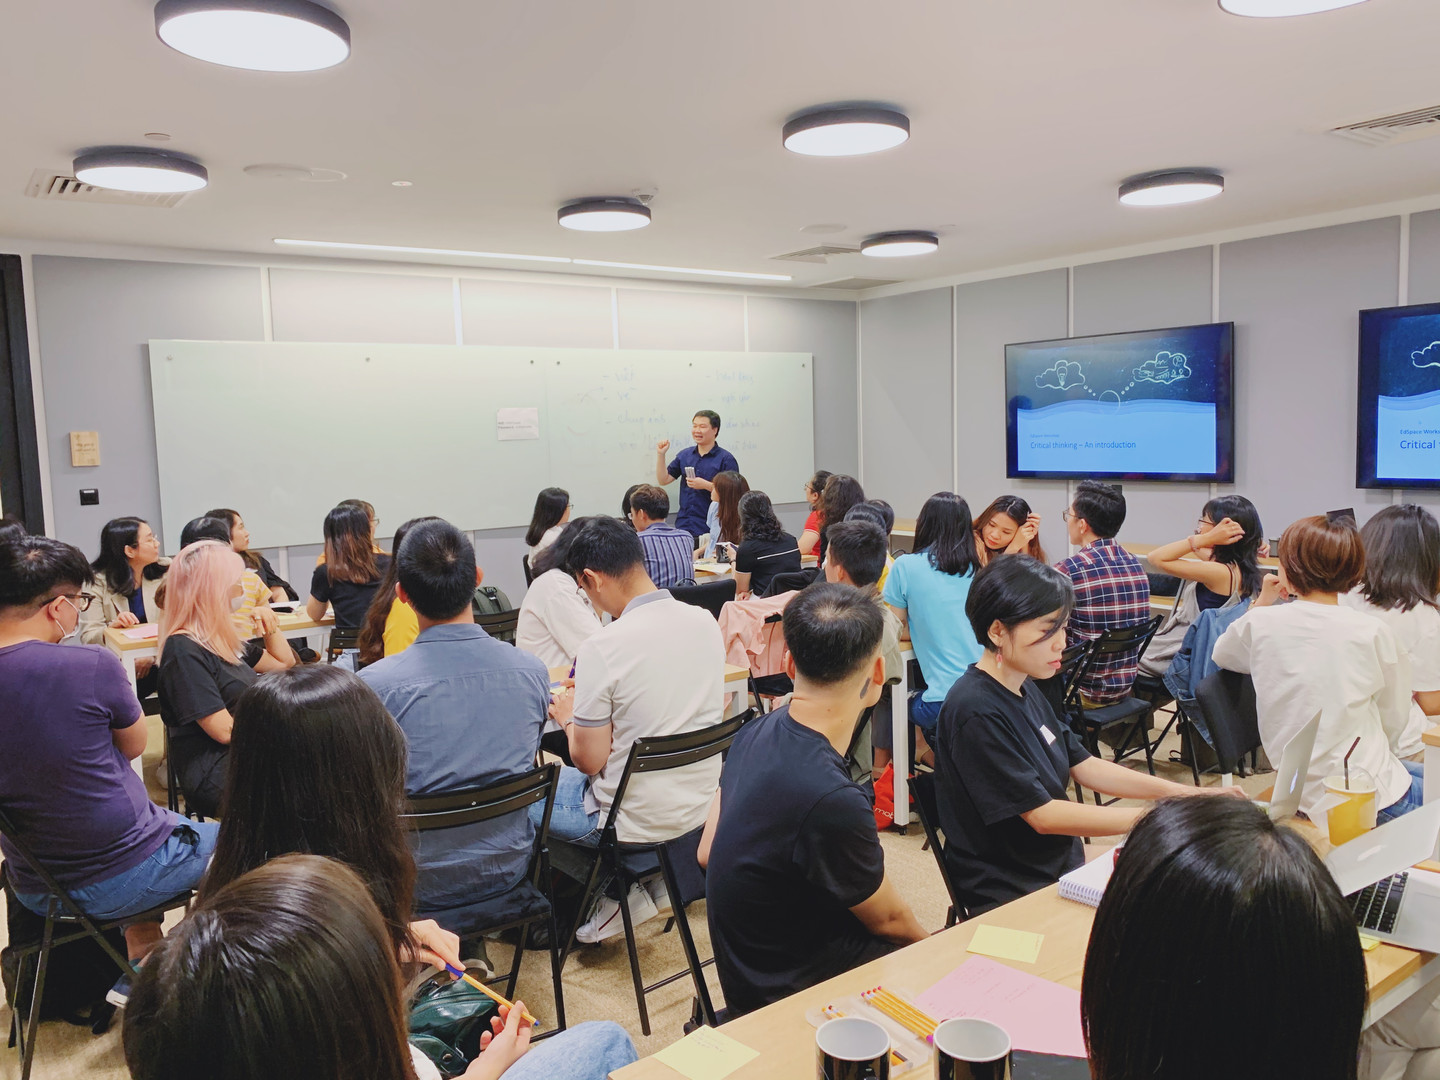 Critical thinking workshop at Wework